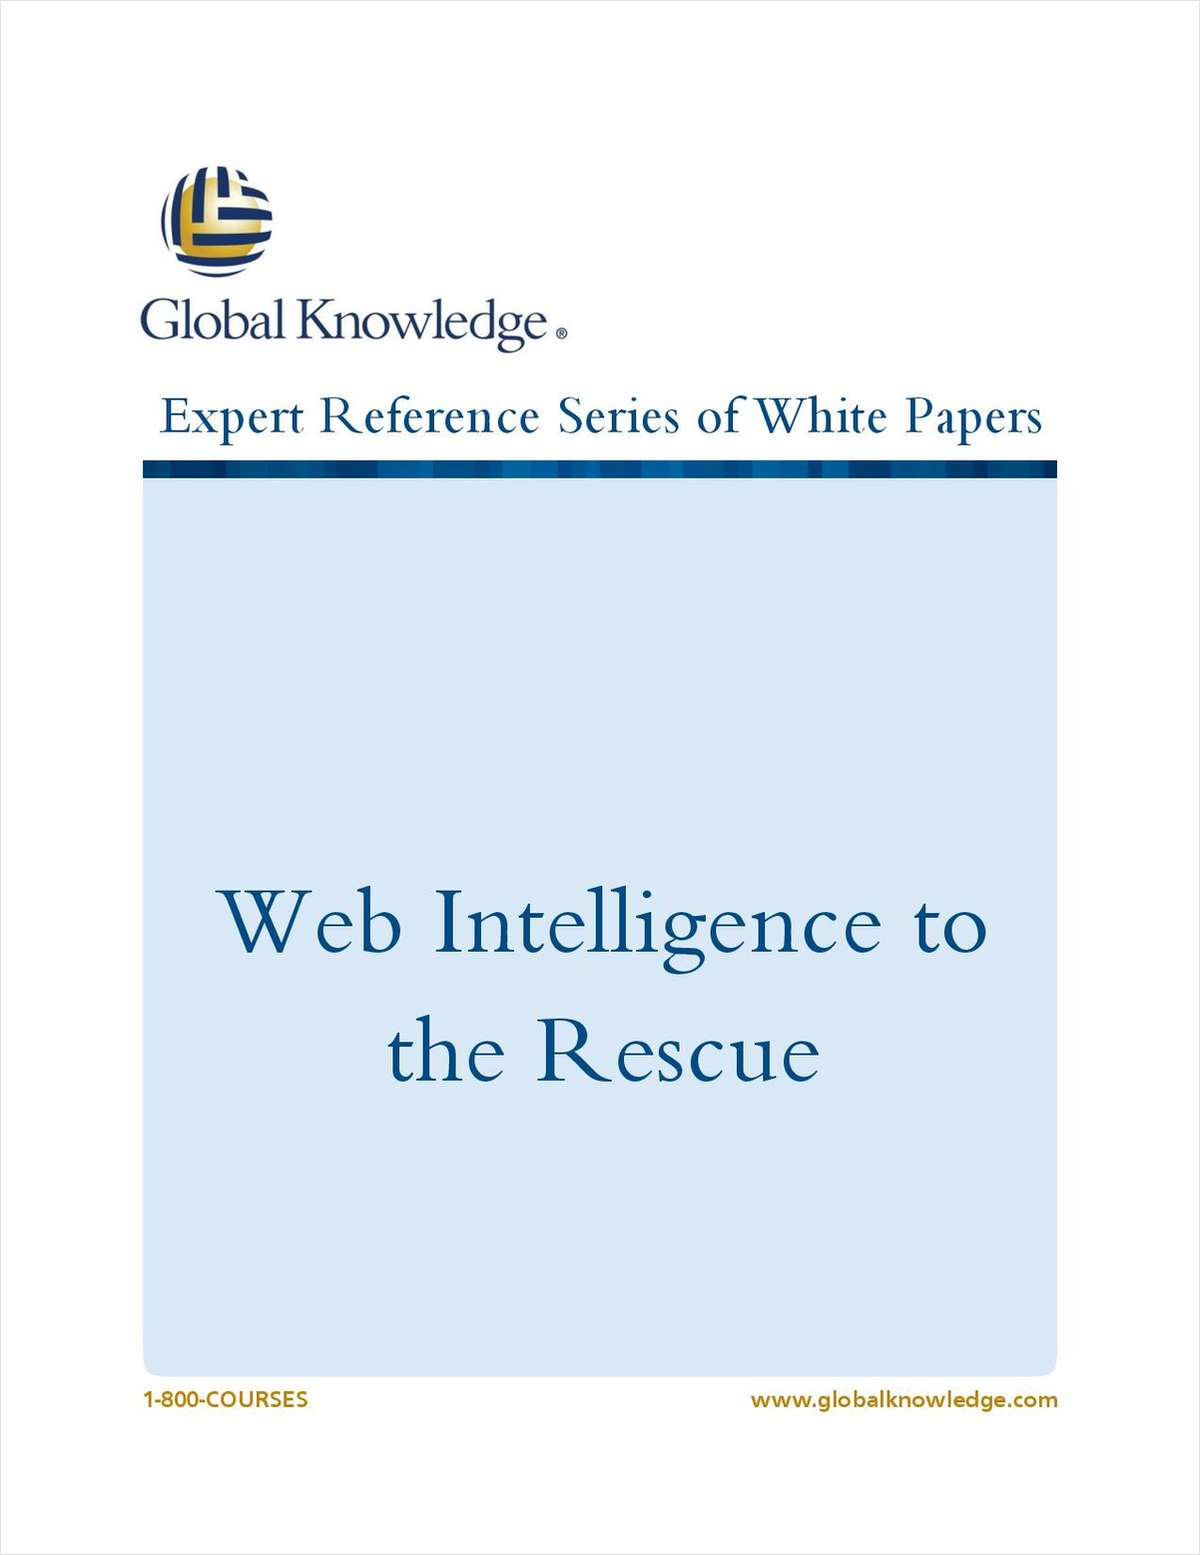 Web Intelligence to the Rescue